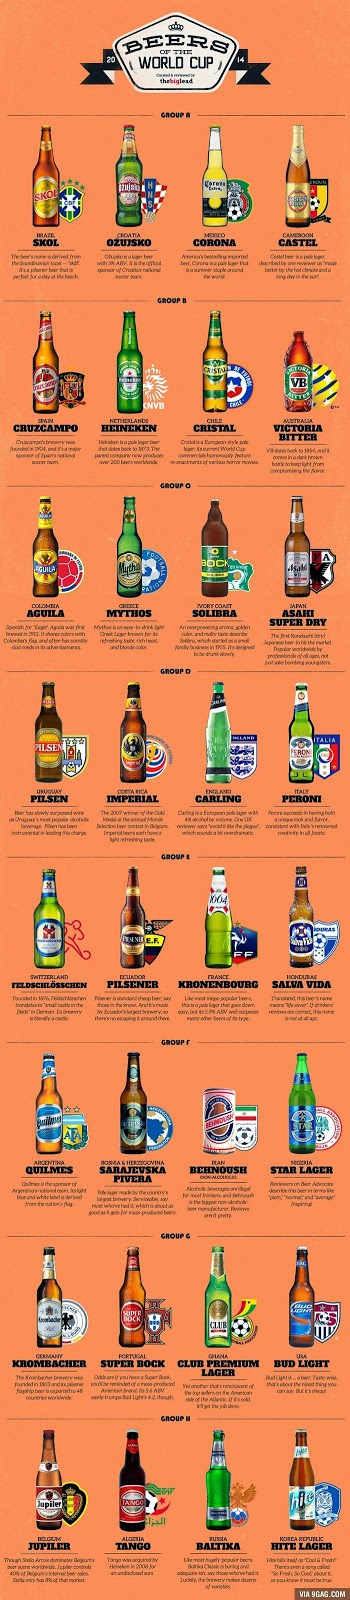 Mundial das Cervejas, Beers of the World Cup